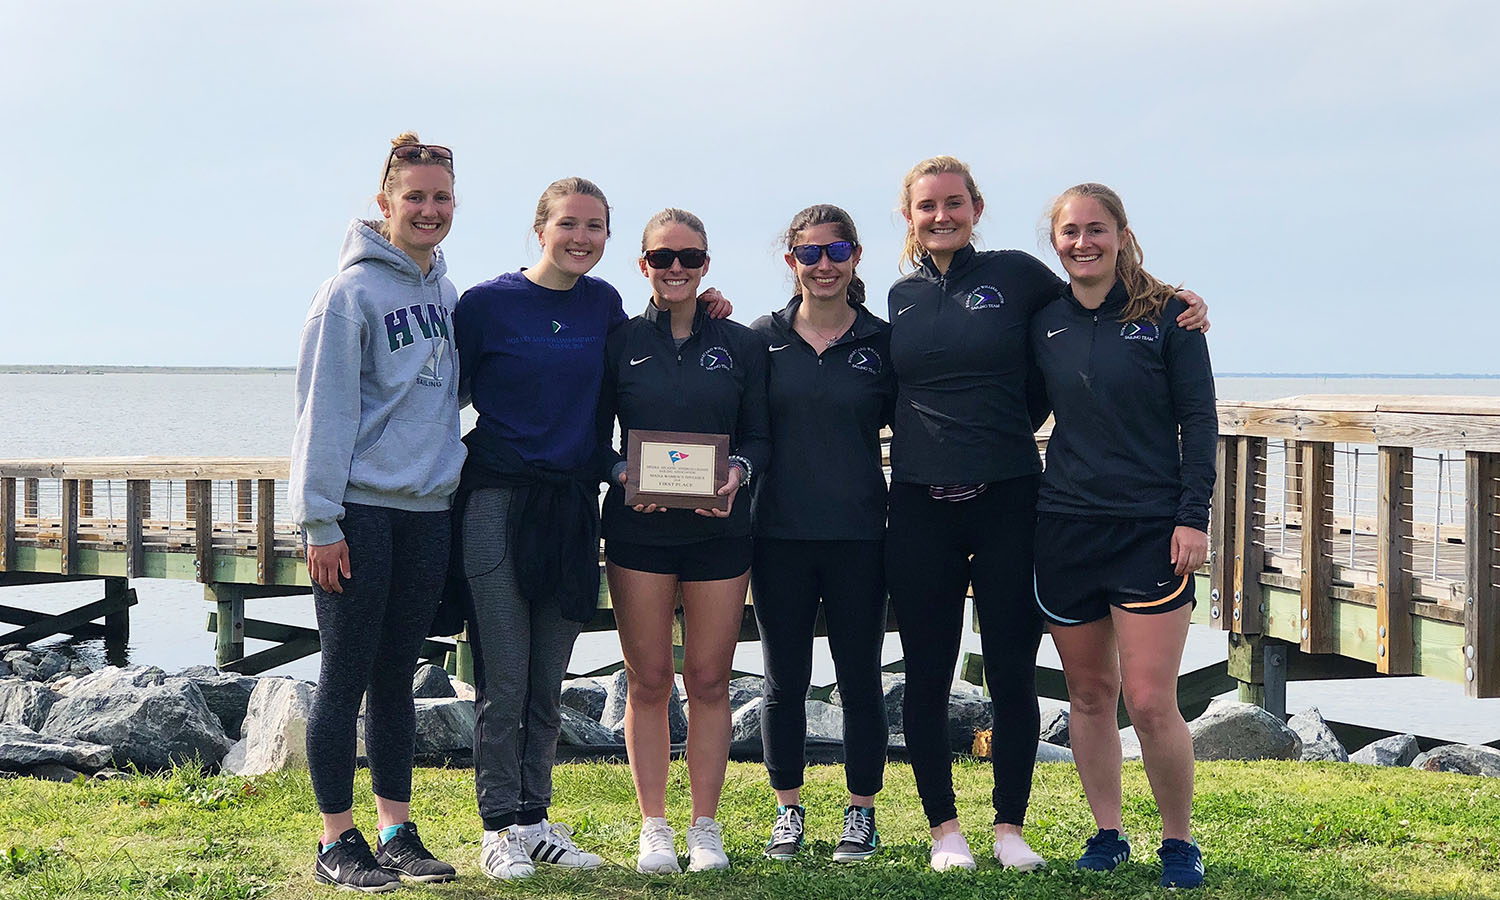 Members of the William Smith sailing team gather for a photo after winning the Middle Atlantic Intercollegiate Sailing Association Women's Championship in Norfolk, Va. It was the Herons' fourth MAISA Women's Championship. The Herons went on to a program best third place finish at the national championships.